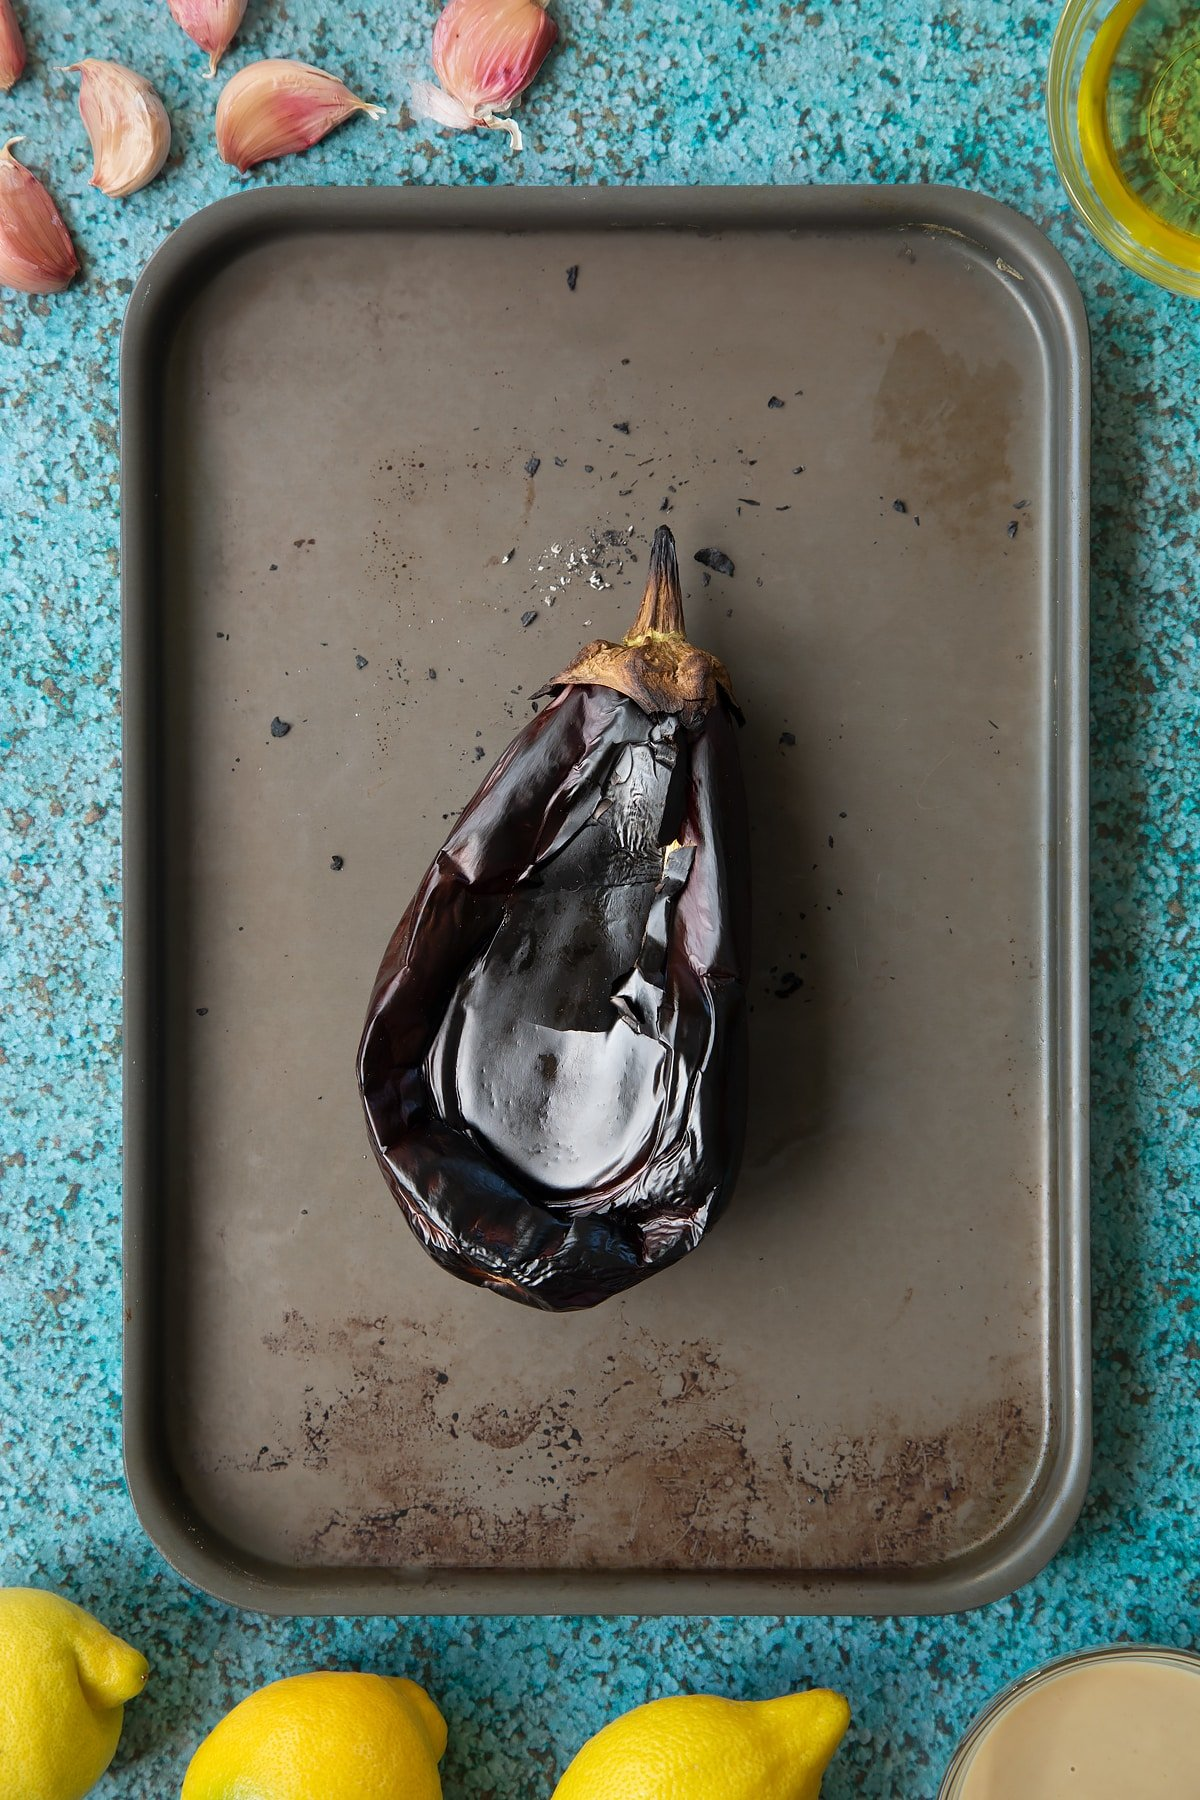 A charred aubergine on a baking tray. Ingredients to make an easy baba ganoush recipe surround the tray.